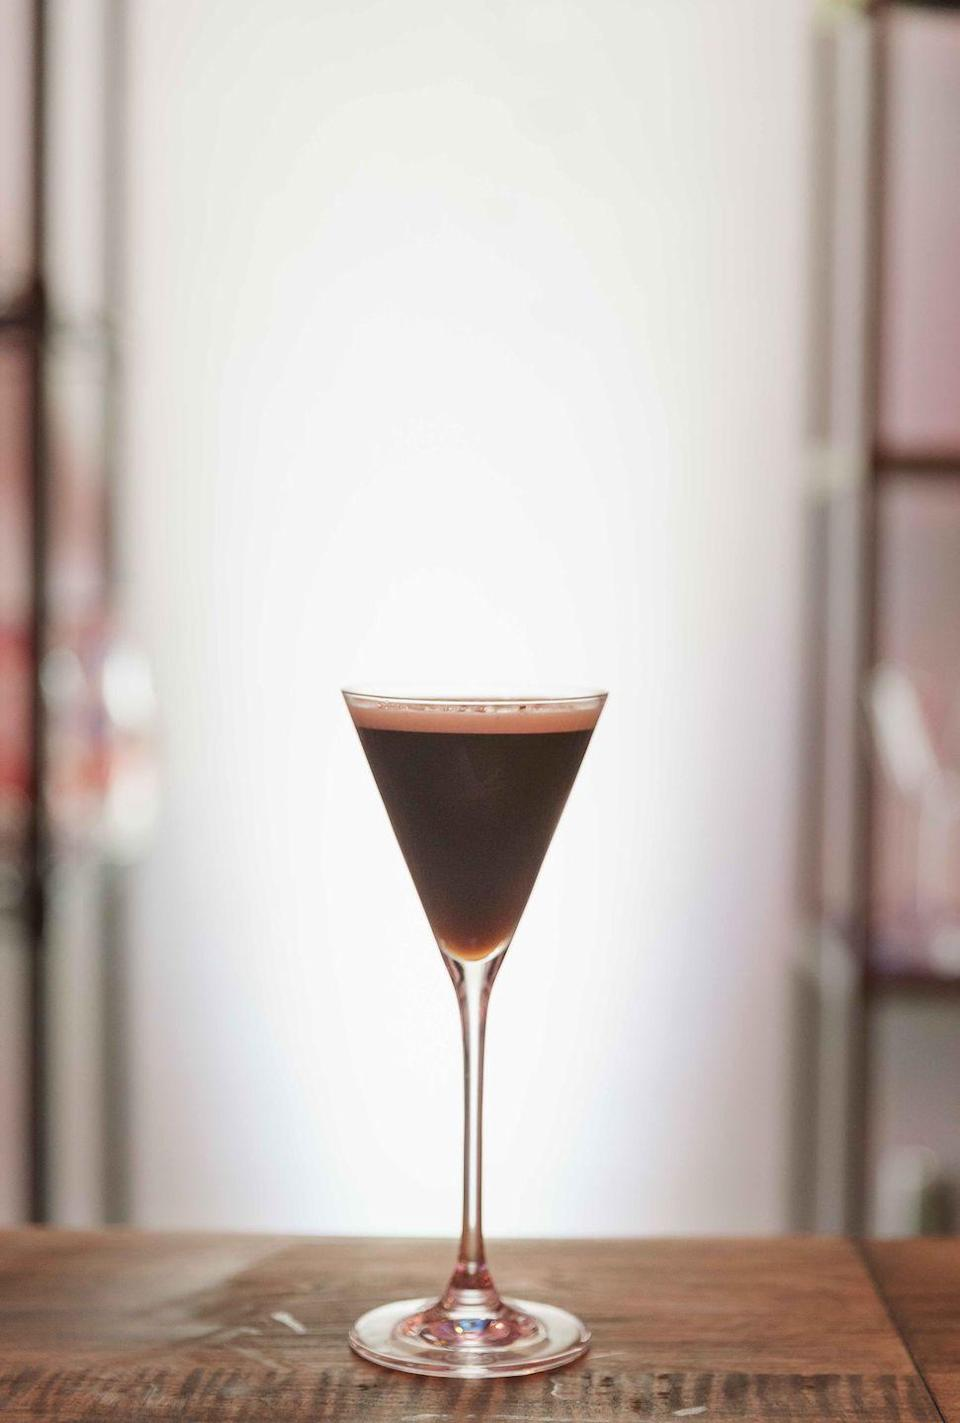 <p><strong>Ingredients</strong></p><p>1.5 oz Grey Goose Vodka<br>1 oz espresso<br>.75 oz premium coffee liqueur<br>1 pinch salt</p><p><strong>Instructions</strong></p><p>Add all ingredients together into a shaker and shake vigorously. Strain into a martini glass. Garnish with salted dark chocolate powder.</p>